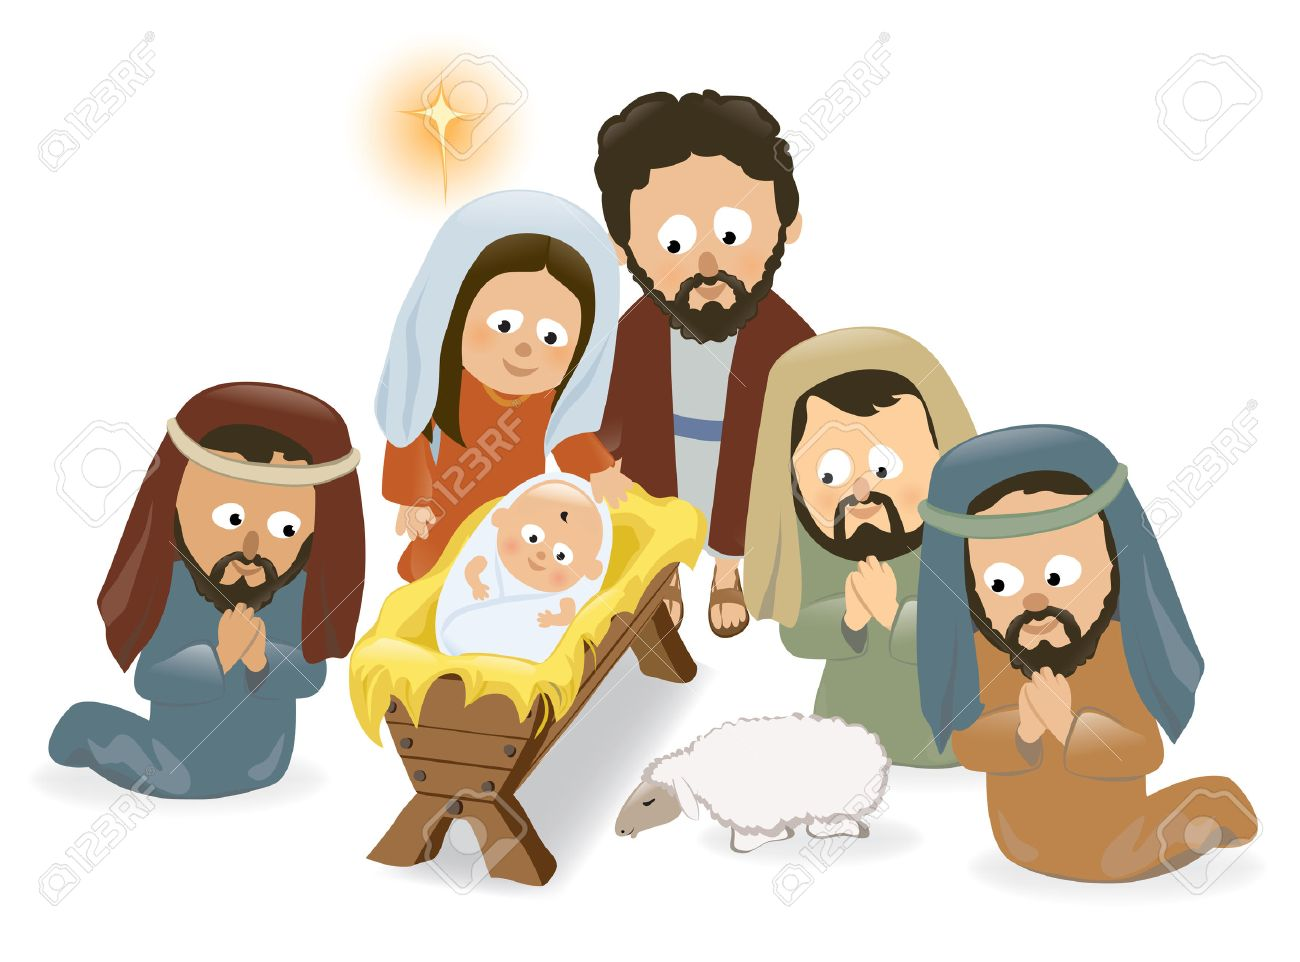 2,567 Baby Jesus Stock Vector Illustration And Royalty Free Baby ...